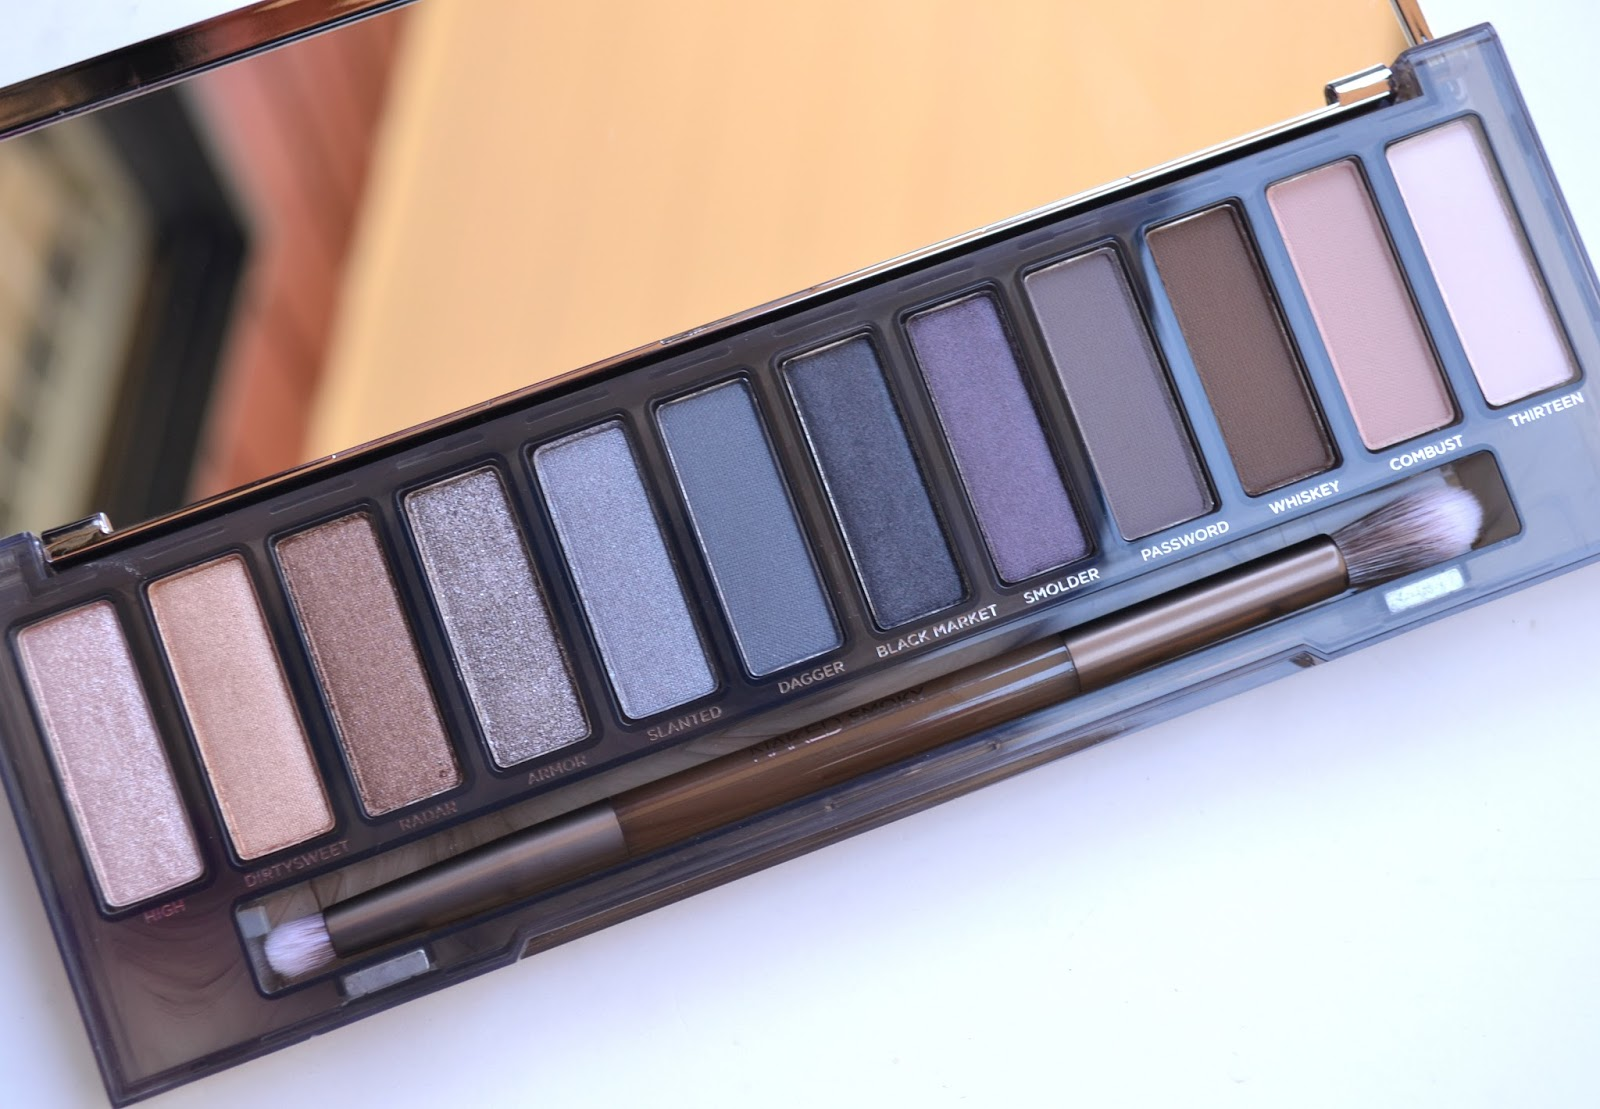 Makeup Look Iconic Ud Smoky Eyes With Urban Decays Naked Decay Eyeshadow Palette